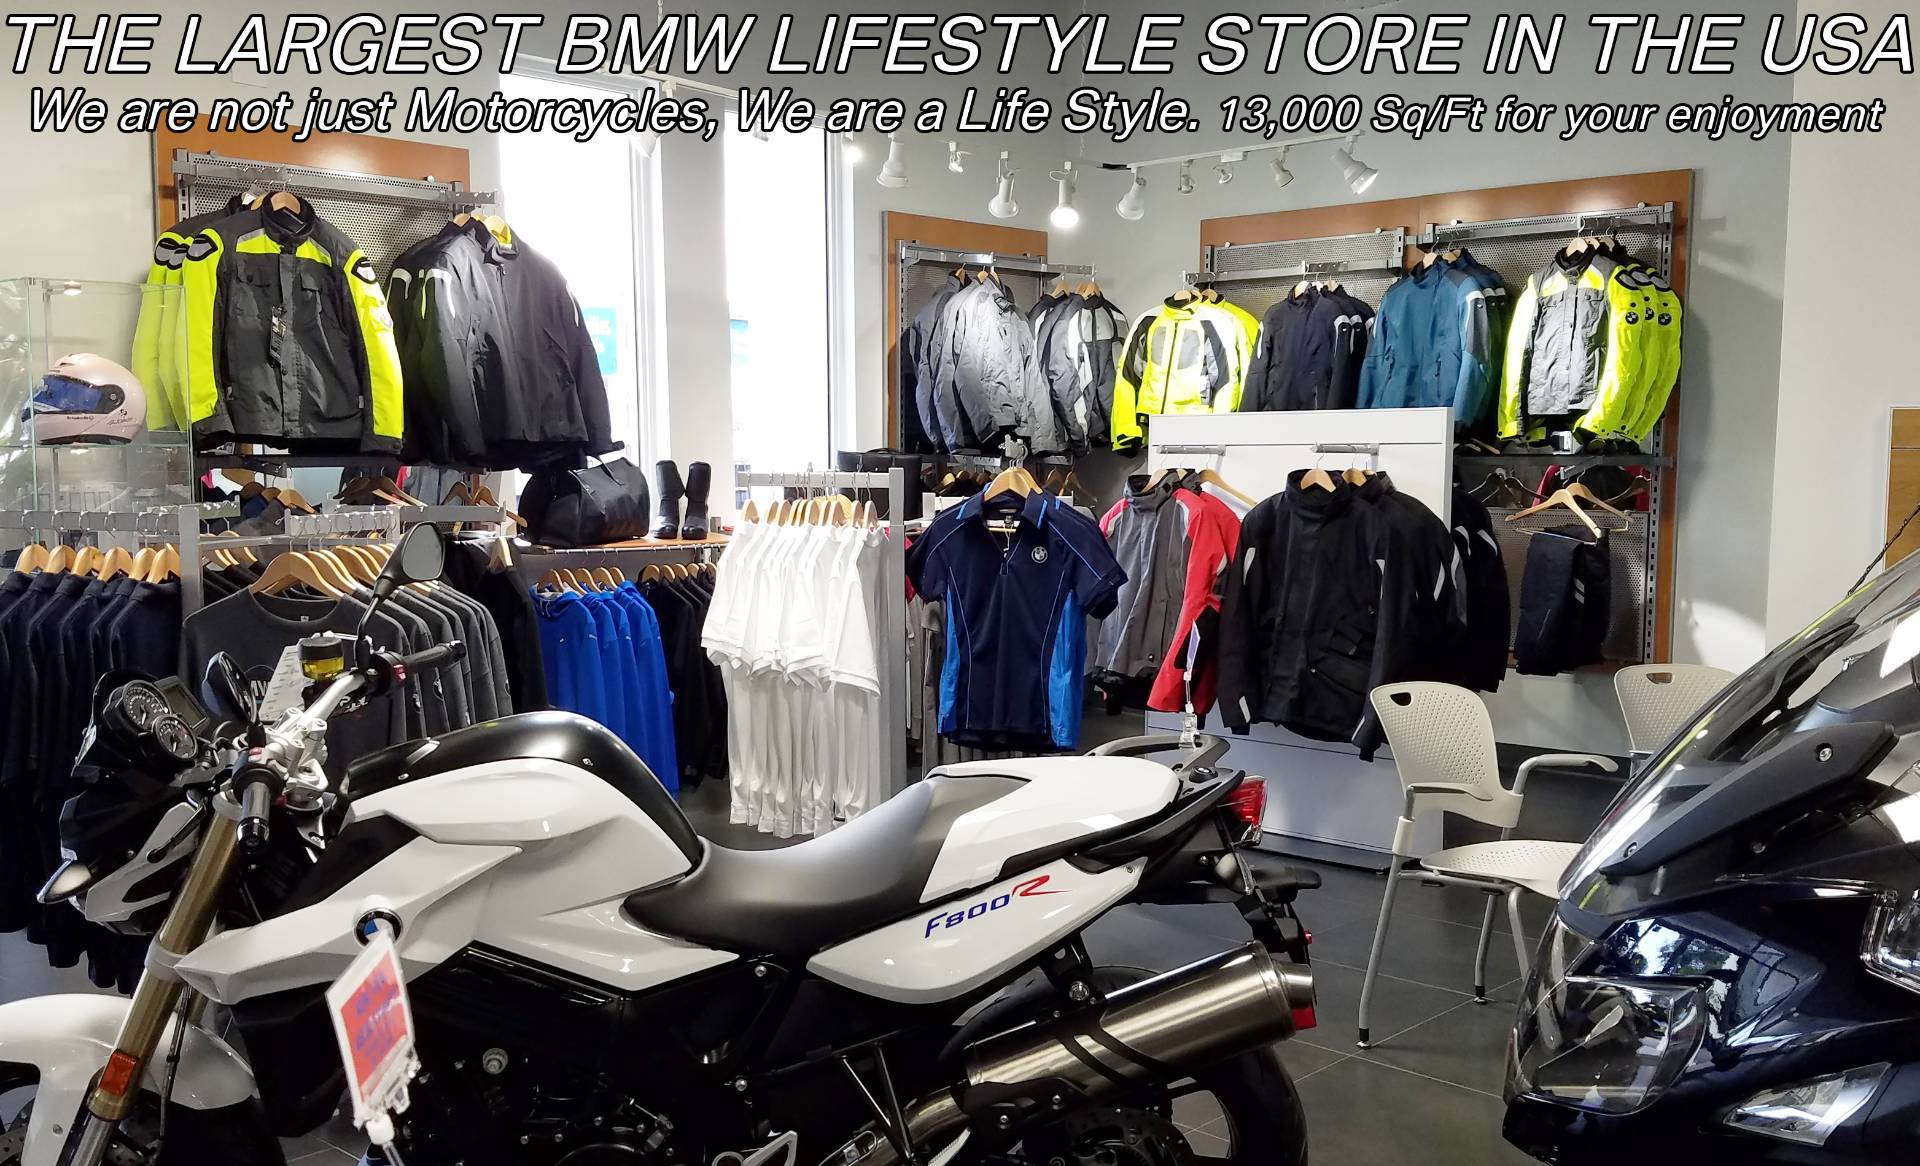 New 2019 BMW R 1250 GS for sale, BMW R 1250GS for sale, BMW Motorcycle GS, new BMW GS, Spirit of GS, BMW Motorcycles of Miami, Motorcycles of Miami, Motorcycles Miami, New Motorcycles, Used Motorcycles, pre-owned. #BMWMotorcyclesOfMiami #MotorcyclesOfMiami. - Photo 37